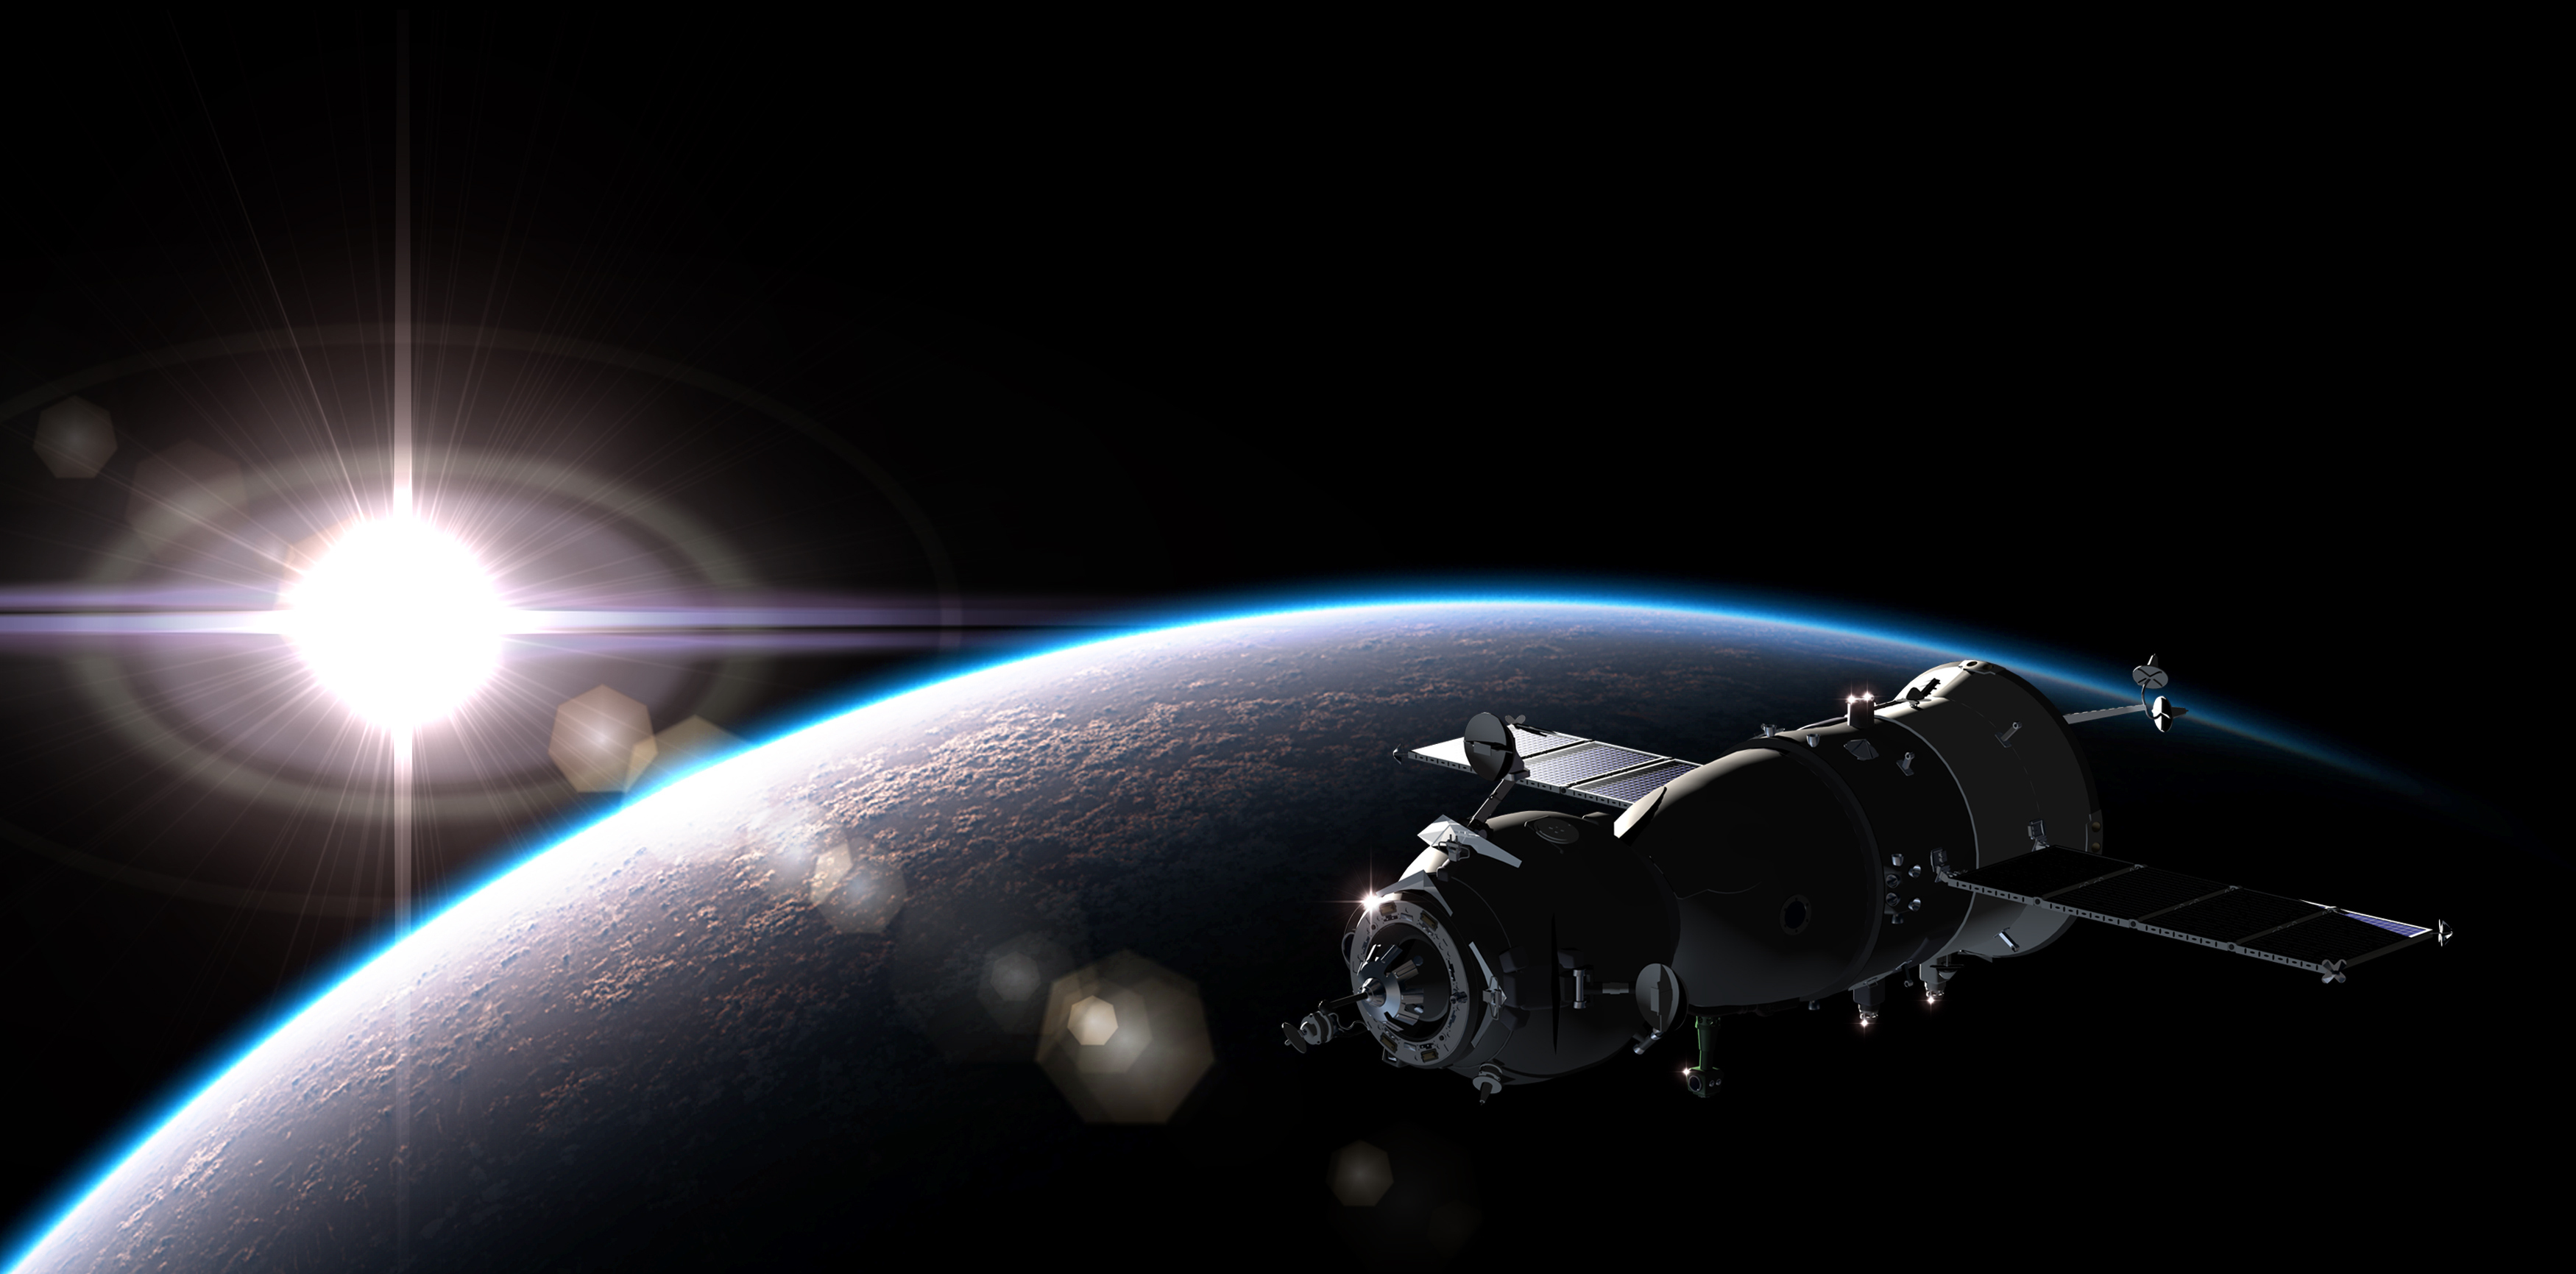 Airbus is building 900 satellites to beam internet from space